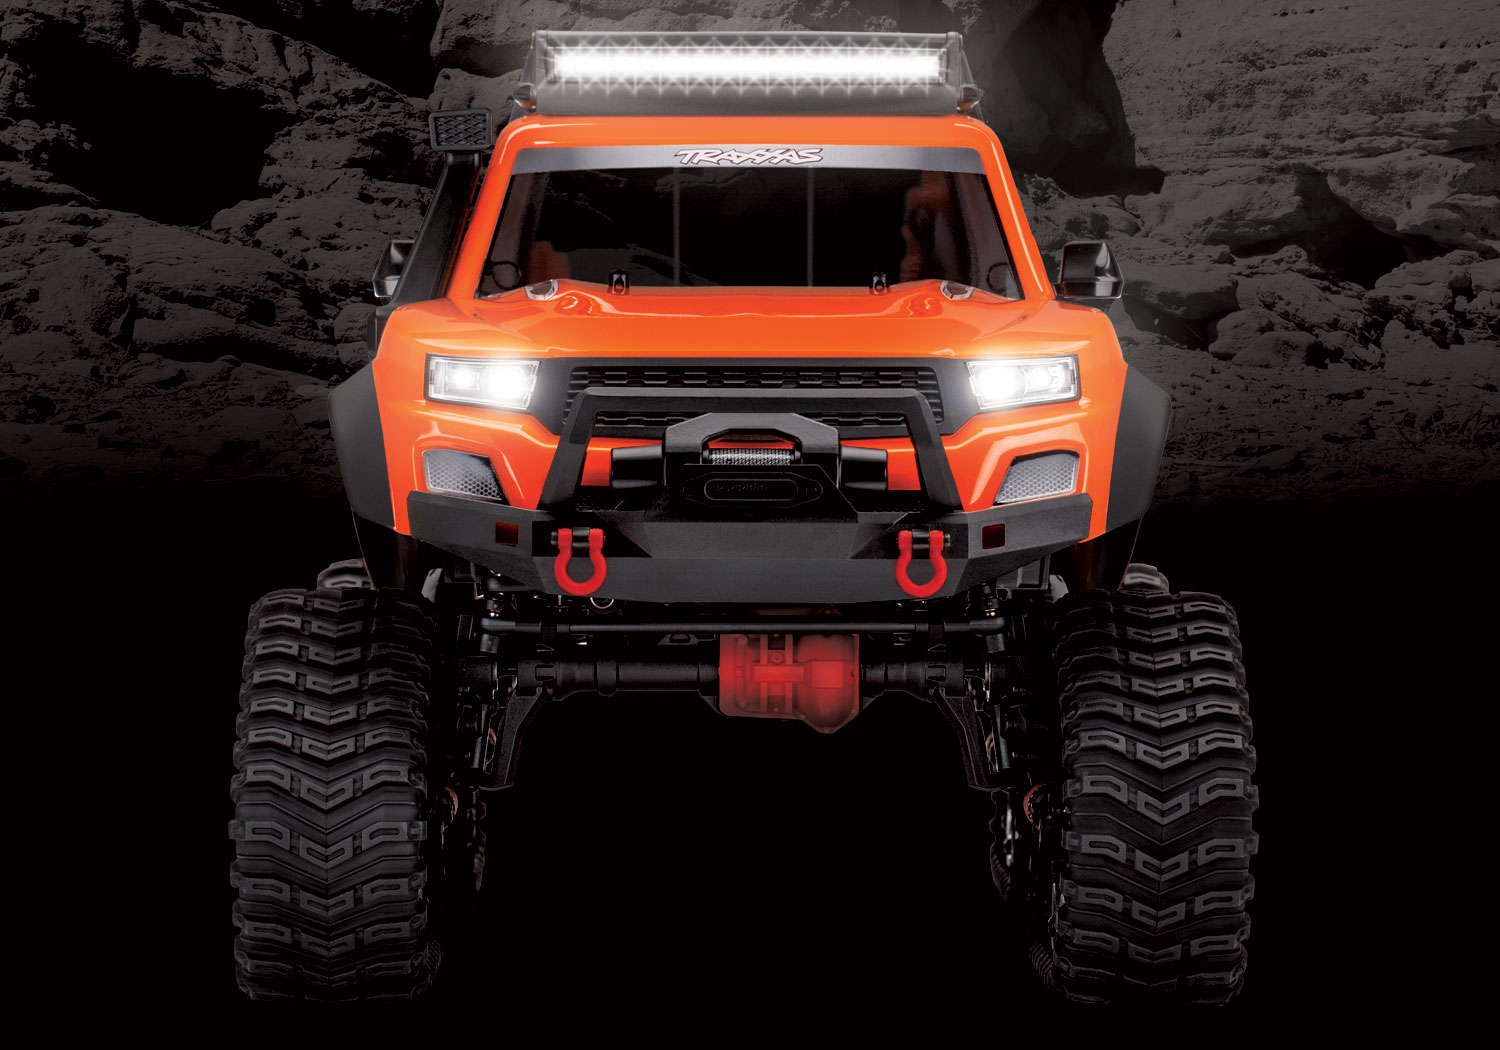 82034-4-TRX-4-Traxx-Hero-shot-Orange-Front.jpg